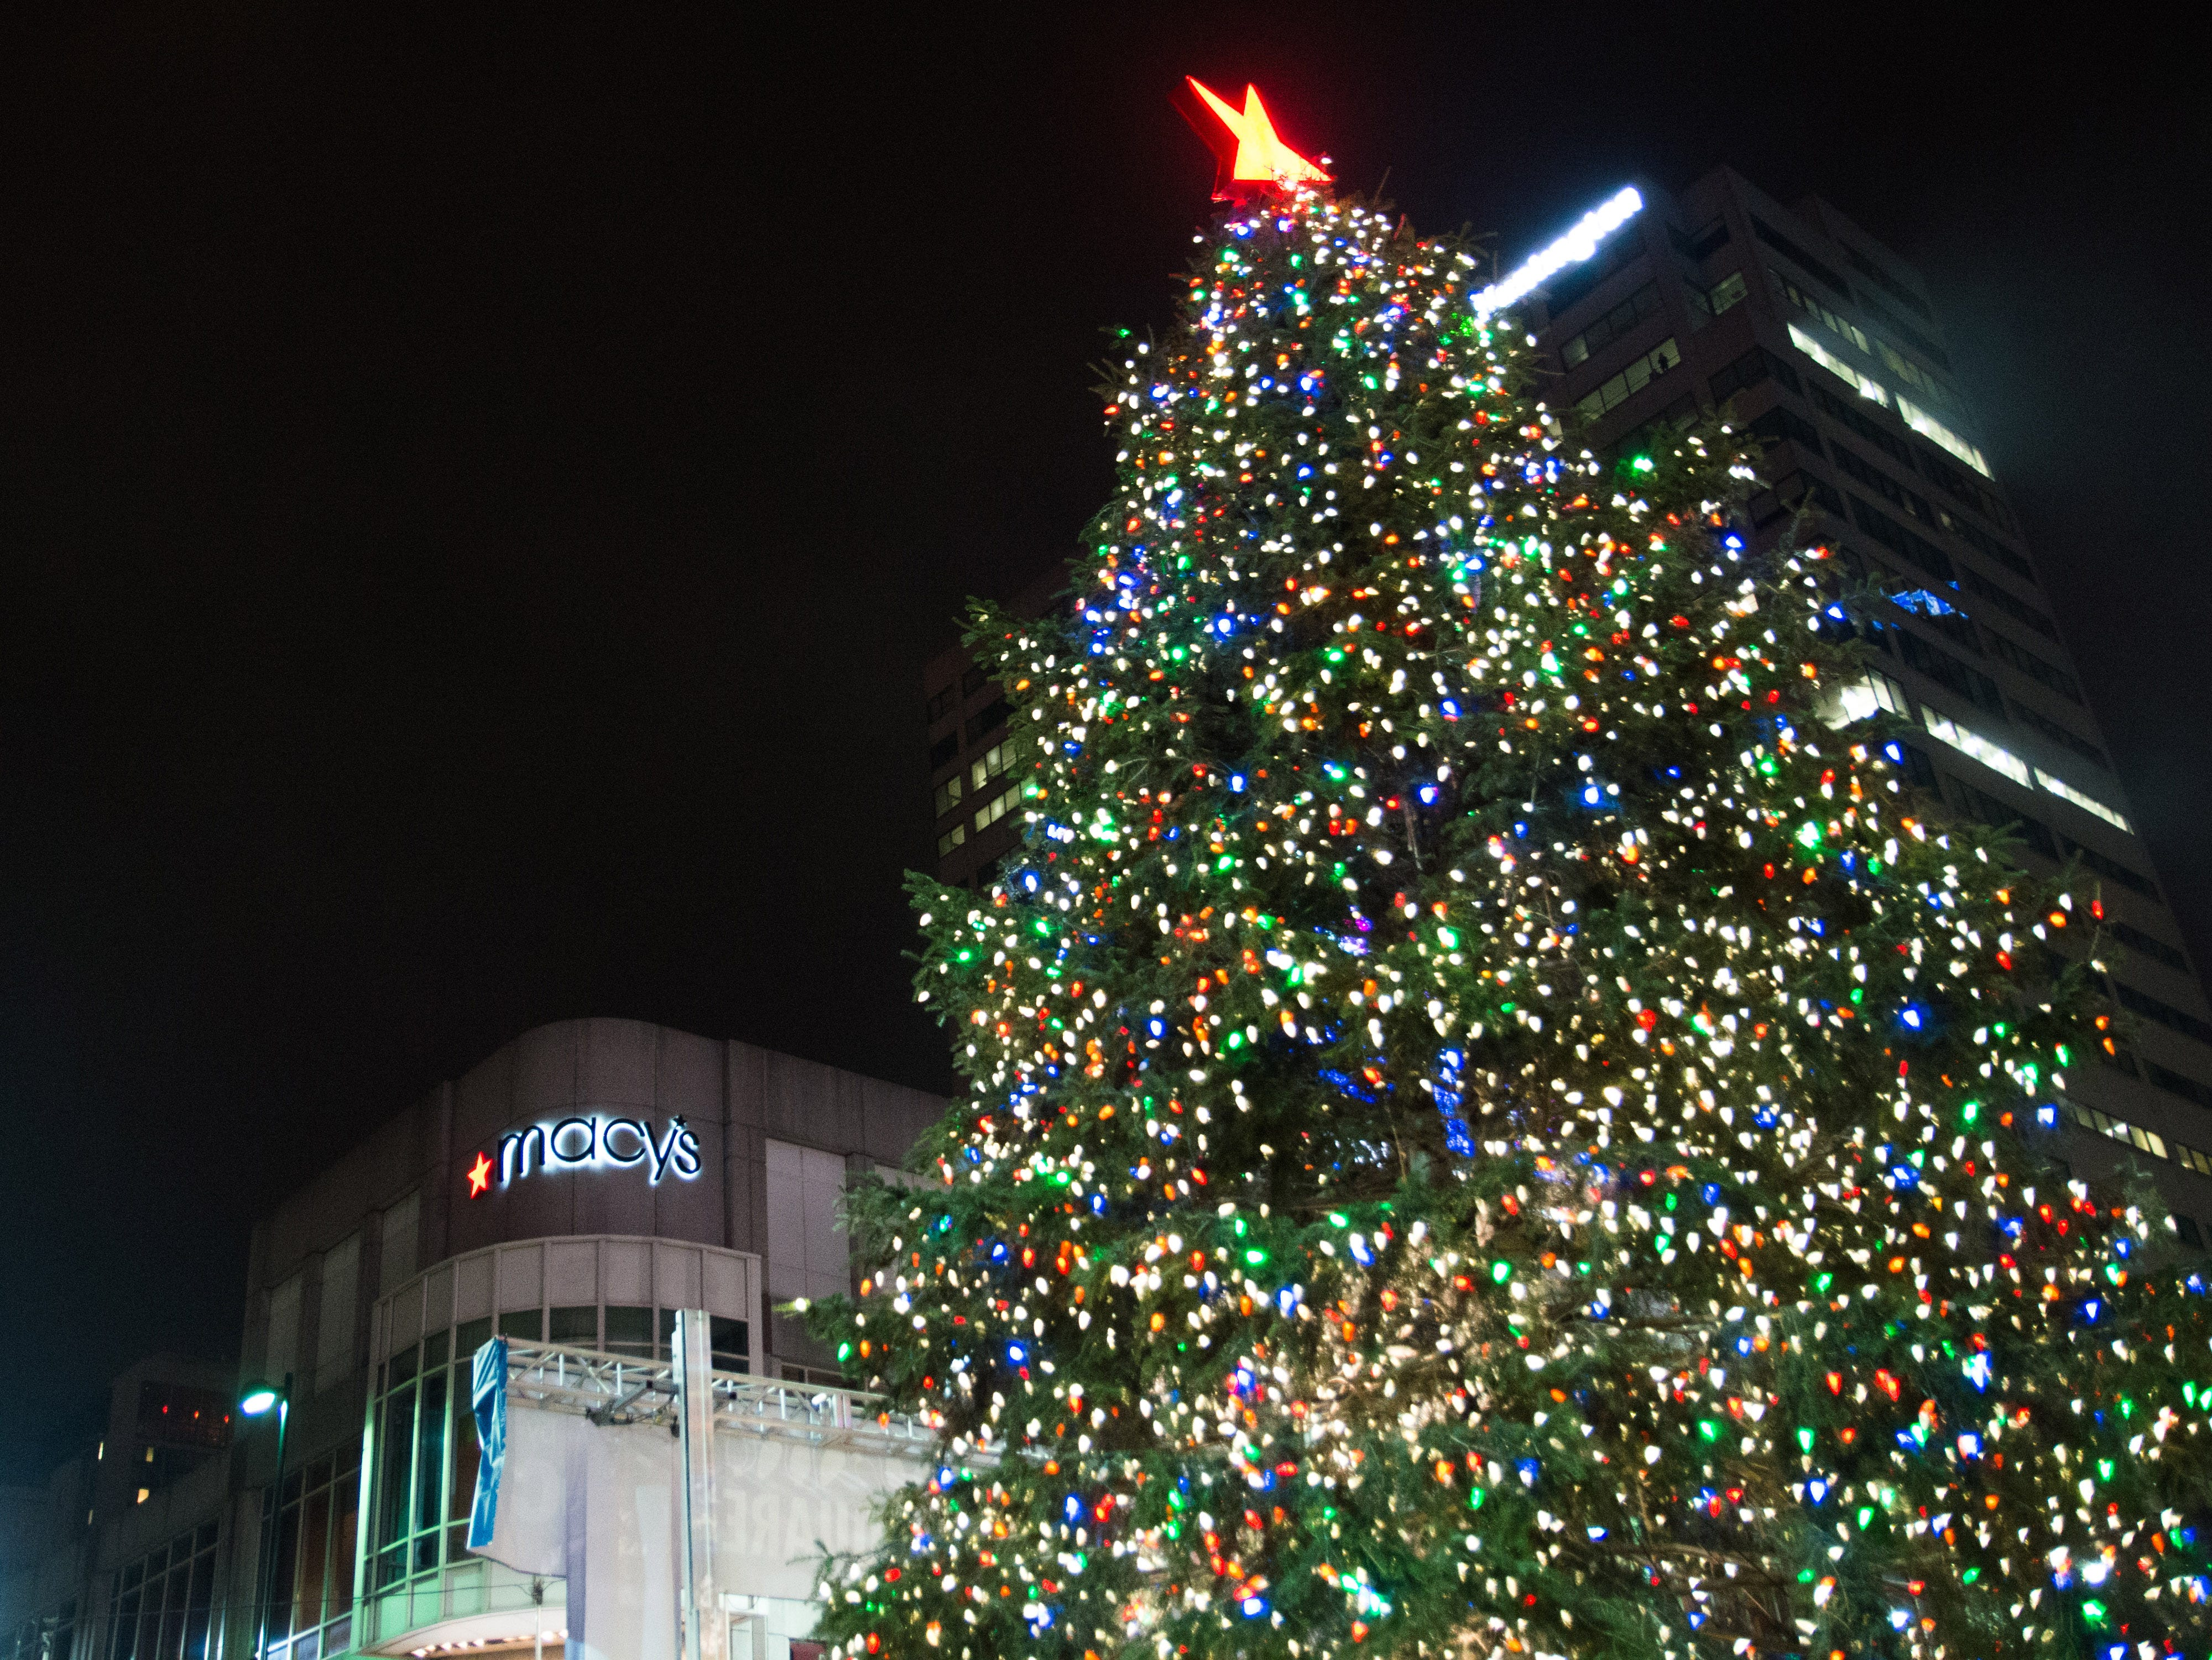 2015: To honor the holiday season, Macy's lit their tree on Fountain Square Nov. 27.